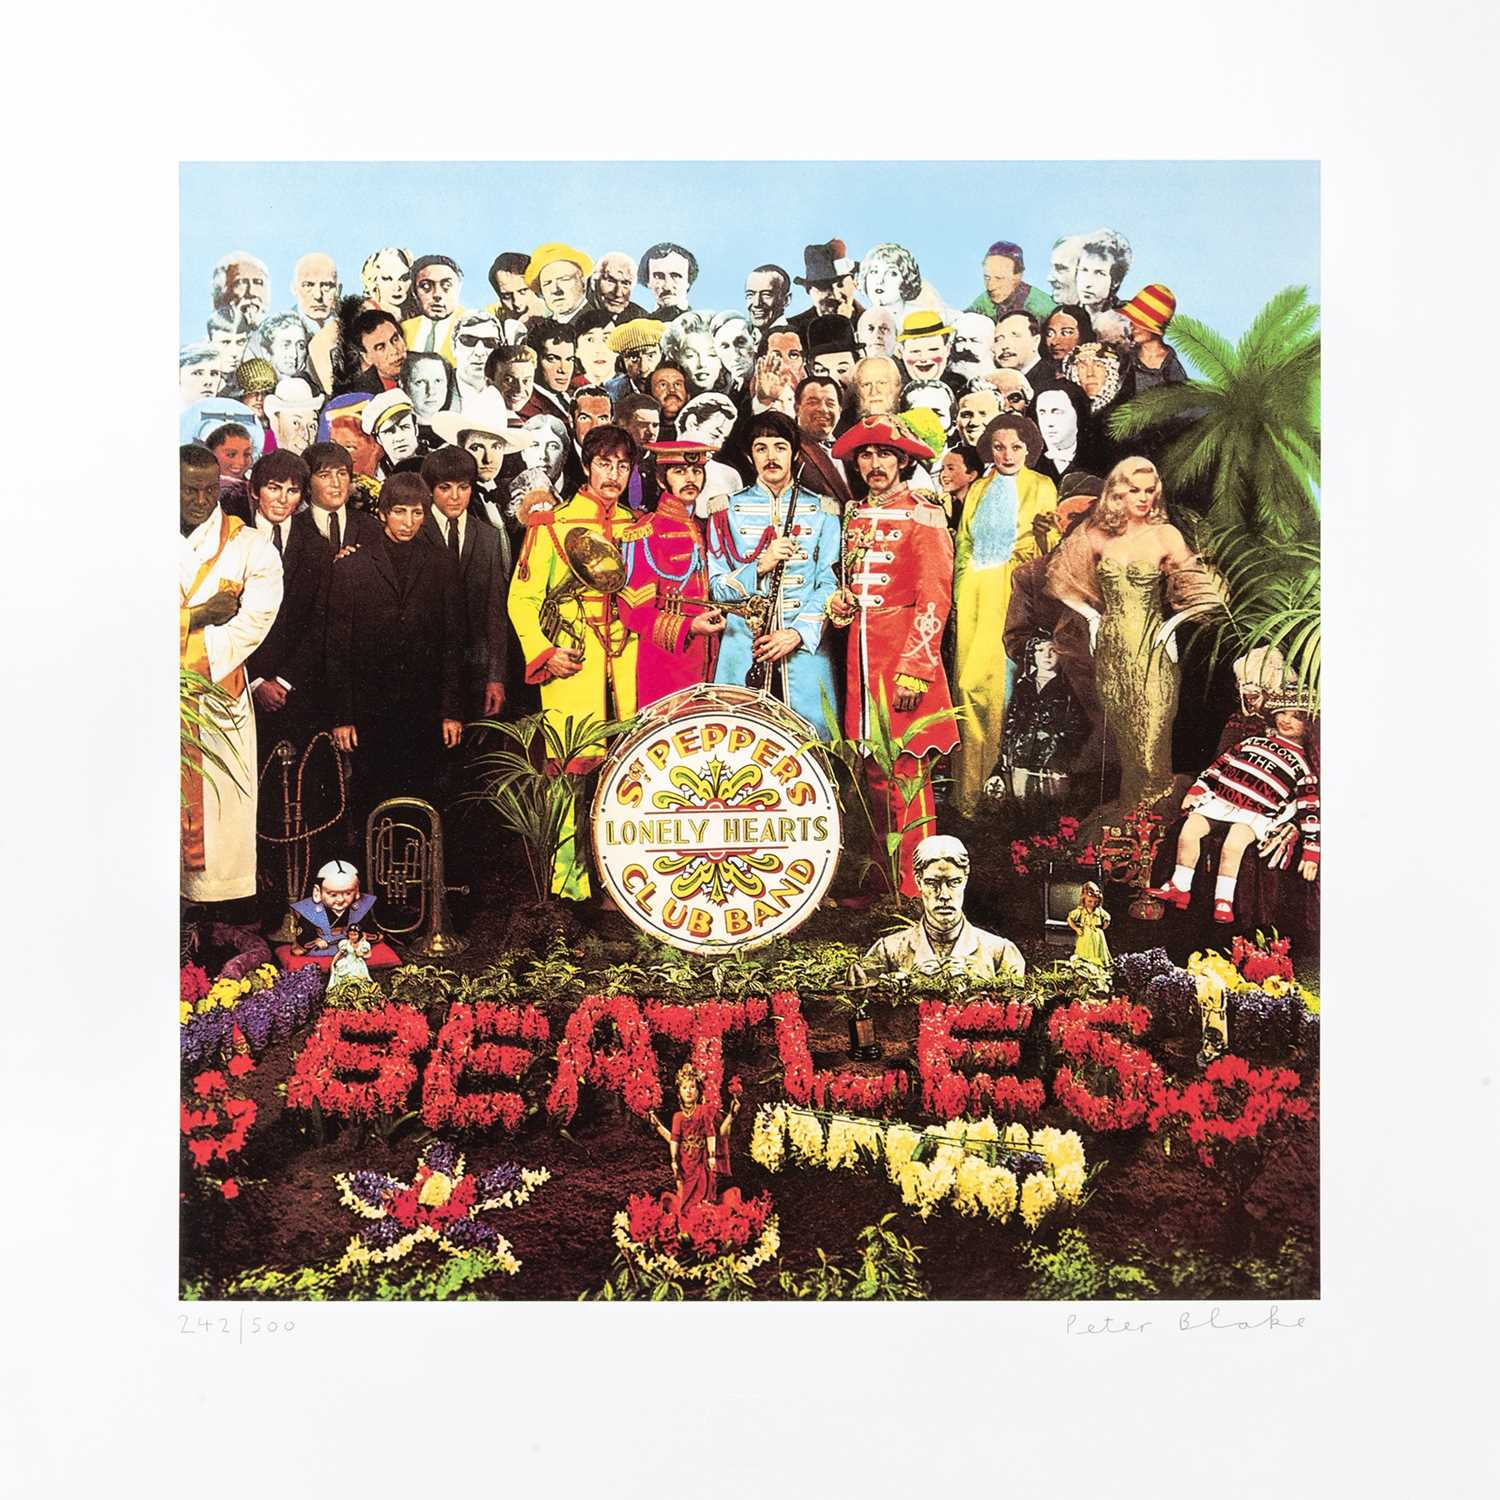 Lot 40 - Peter Blake (British 1932-), 'Sergeant Pepper's Lonely Hearts Club Band', 2007